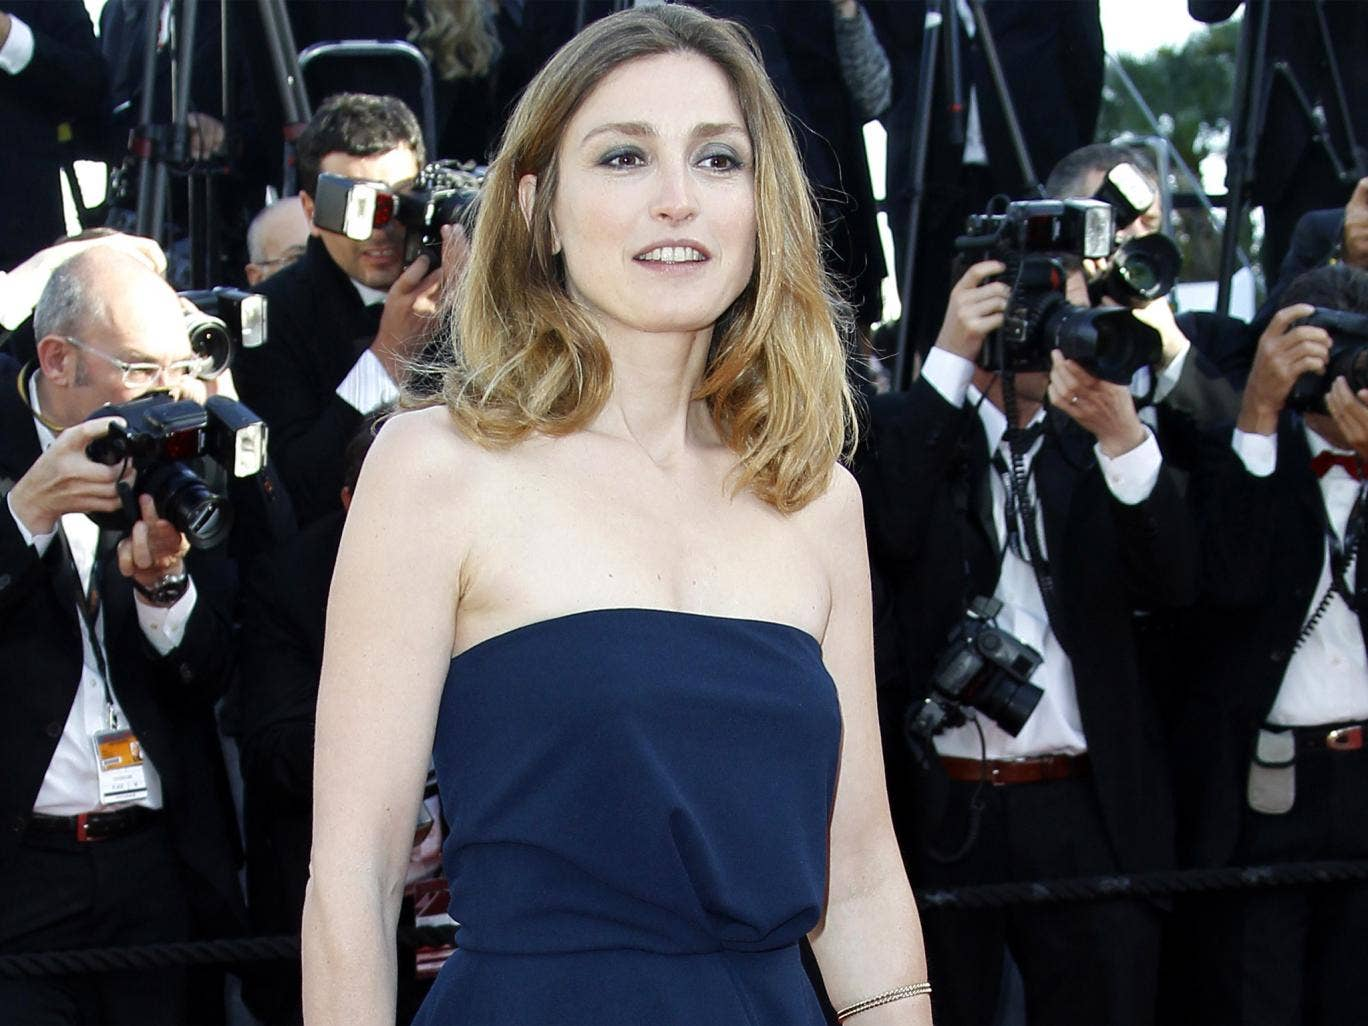 French press said that Mr Hollande's affair with Julie Gayet started more than two years ago